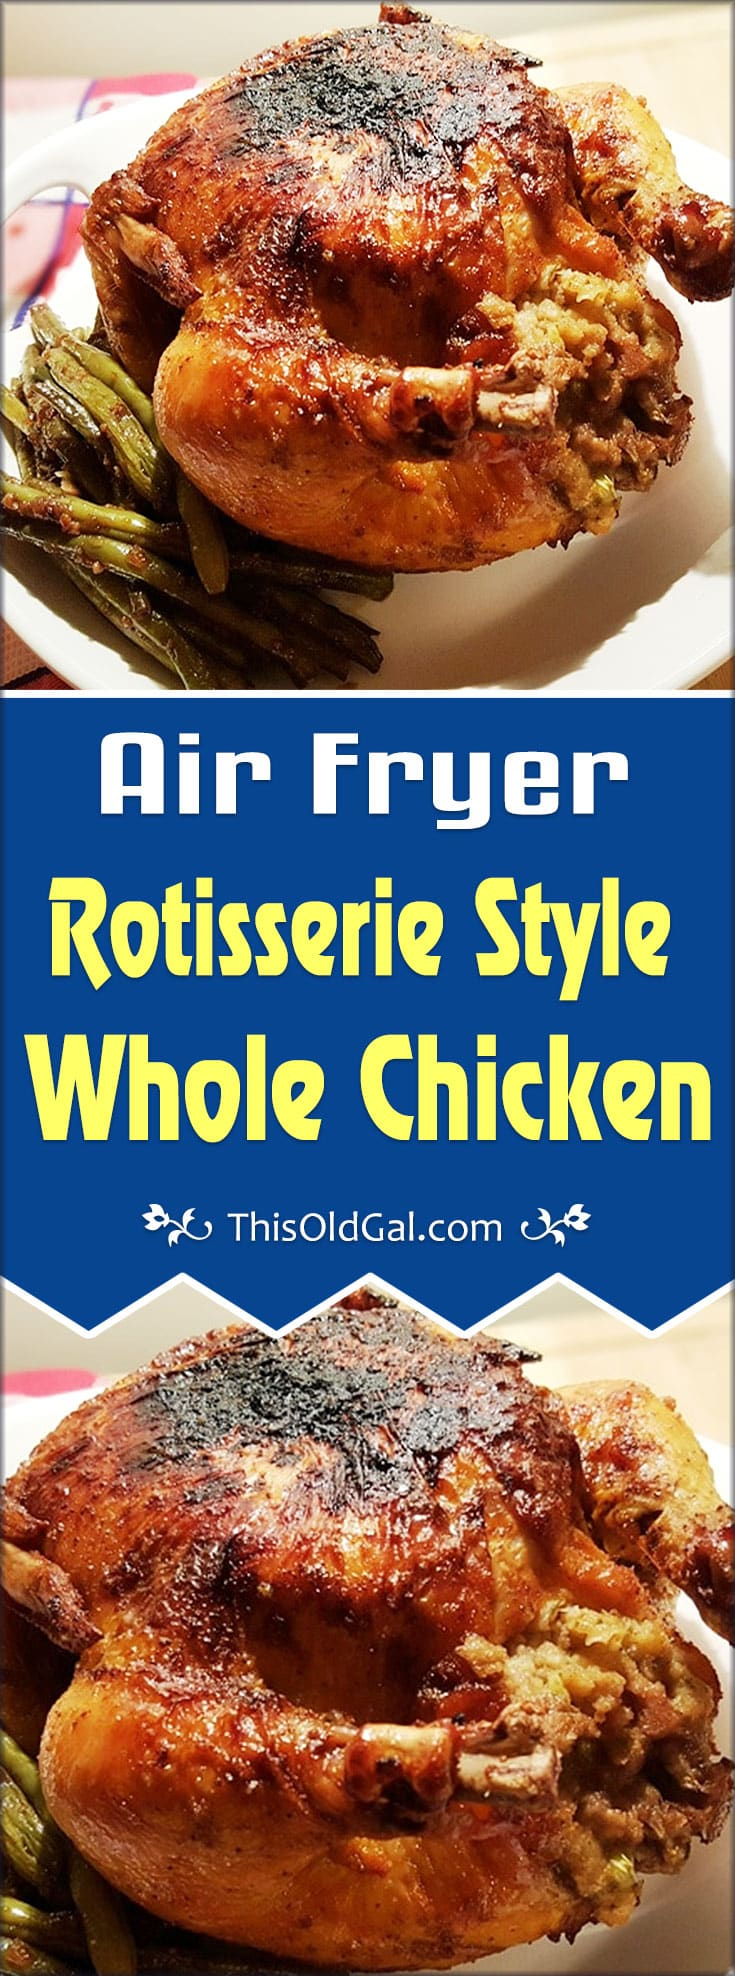 Air Fryer Rotisserie Chicken This Old Gal